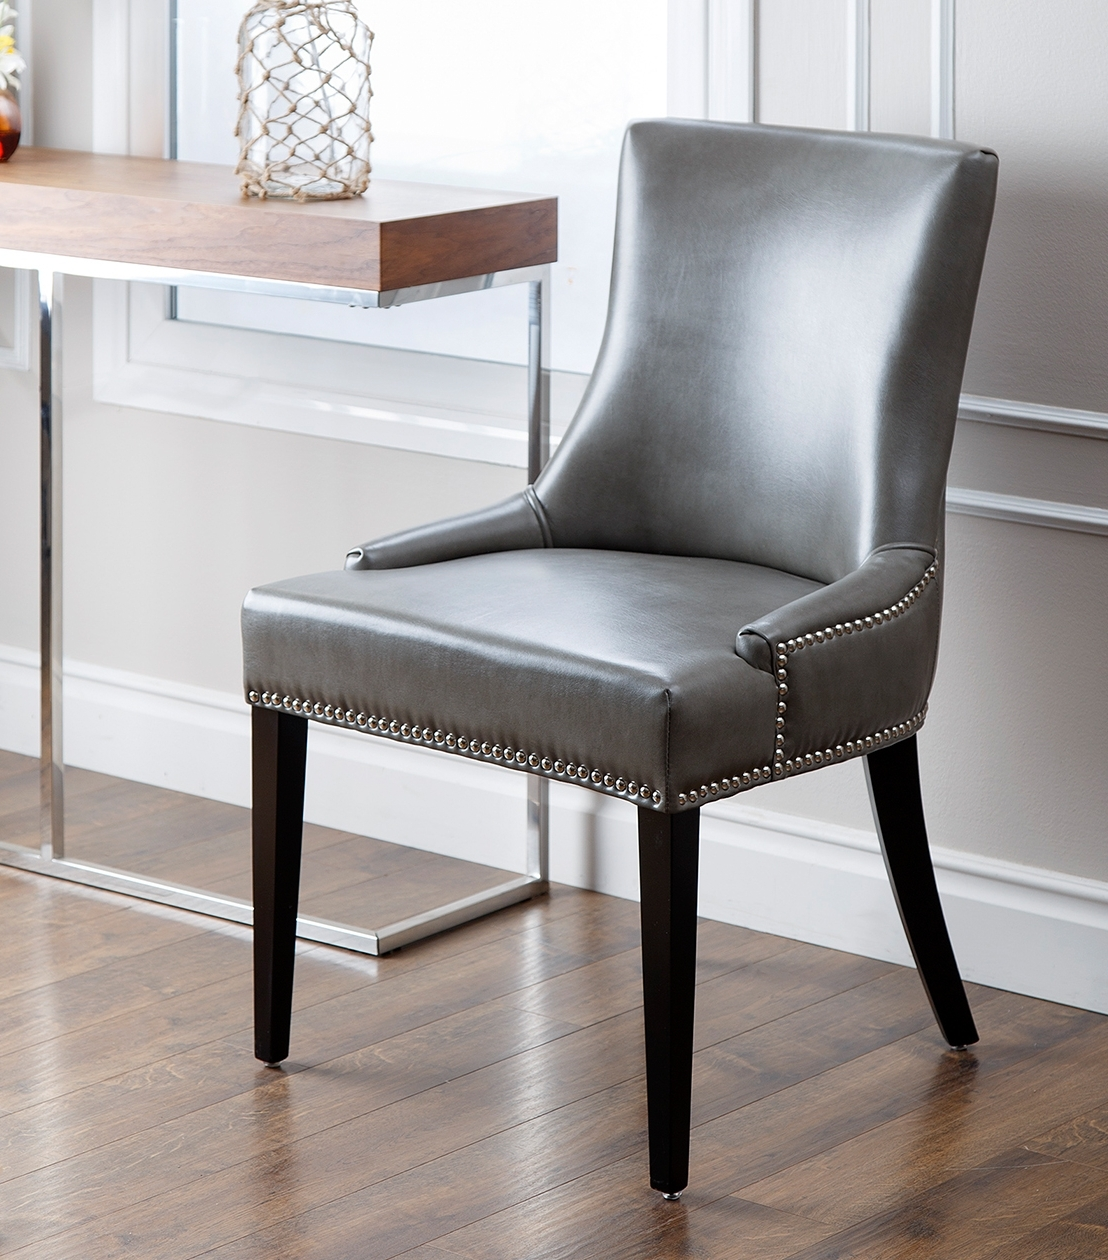 Real Leather Dining Chairs Inside Fashionable Grey Leather Dining Chairs For Furnishing The Dining Room – Home (View 17 of 25)